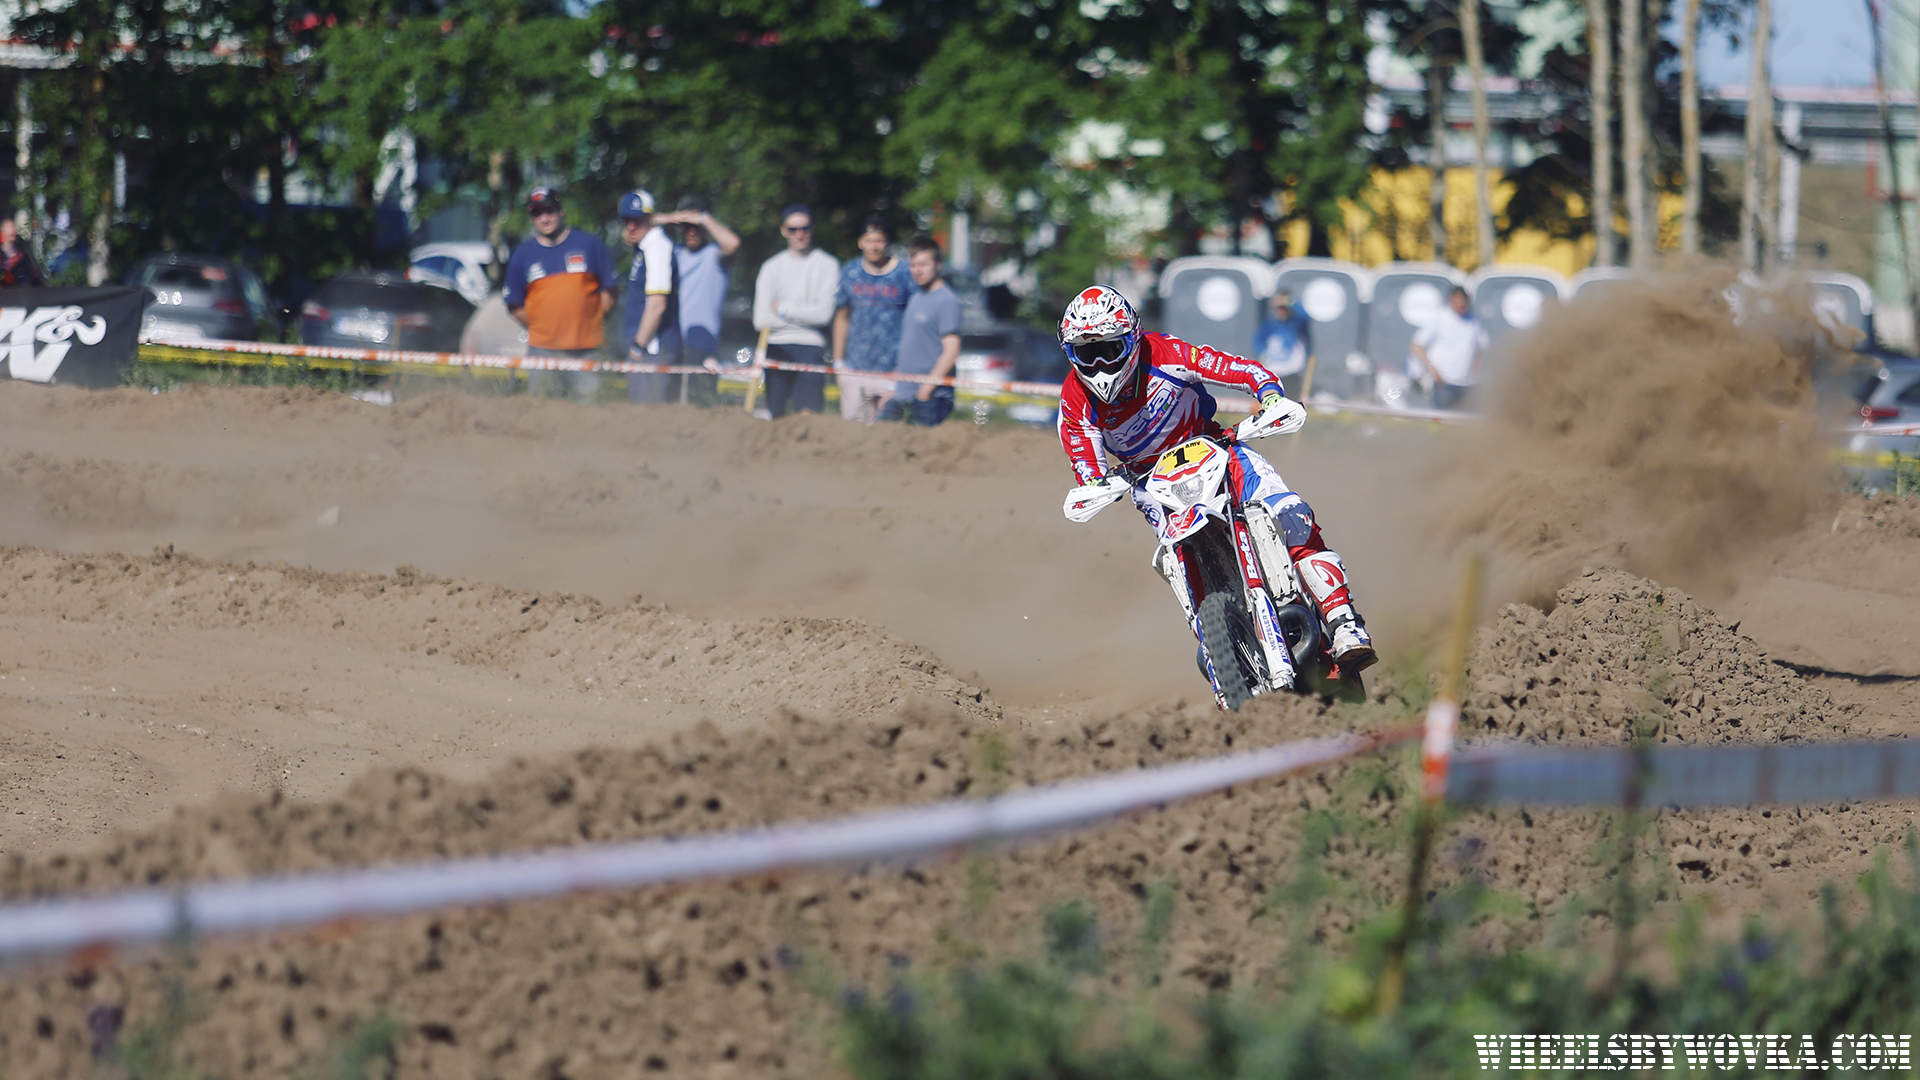 enduro-tallinn-gp-estonia-by-wheelsbywovka-1